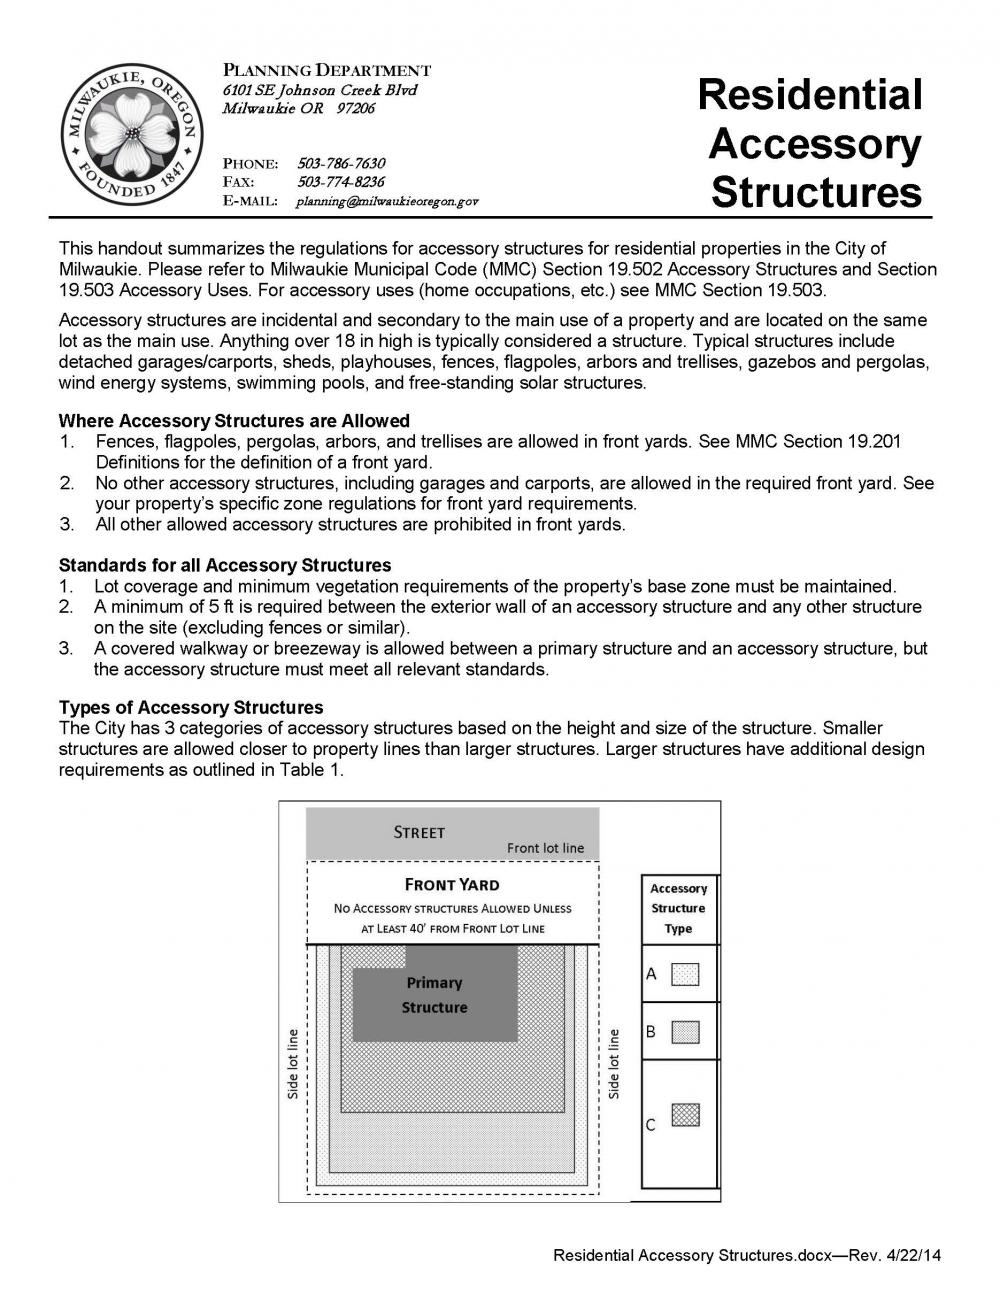 residential accessory structures planning form city of milwaukie